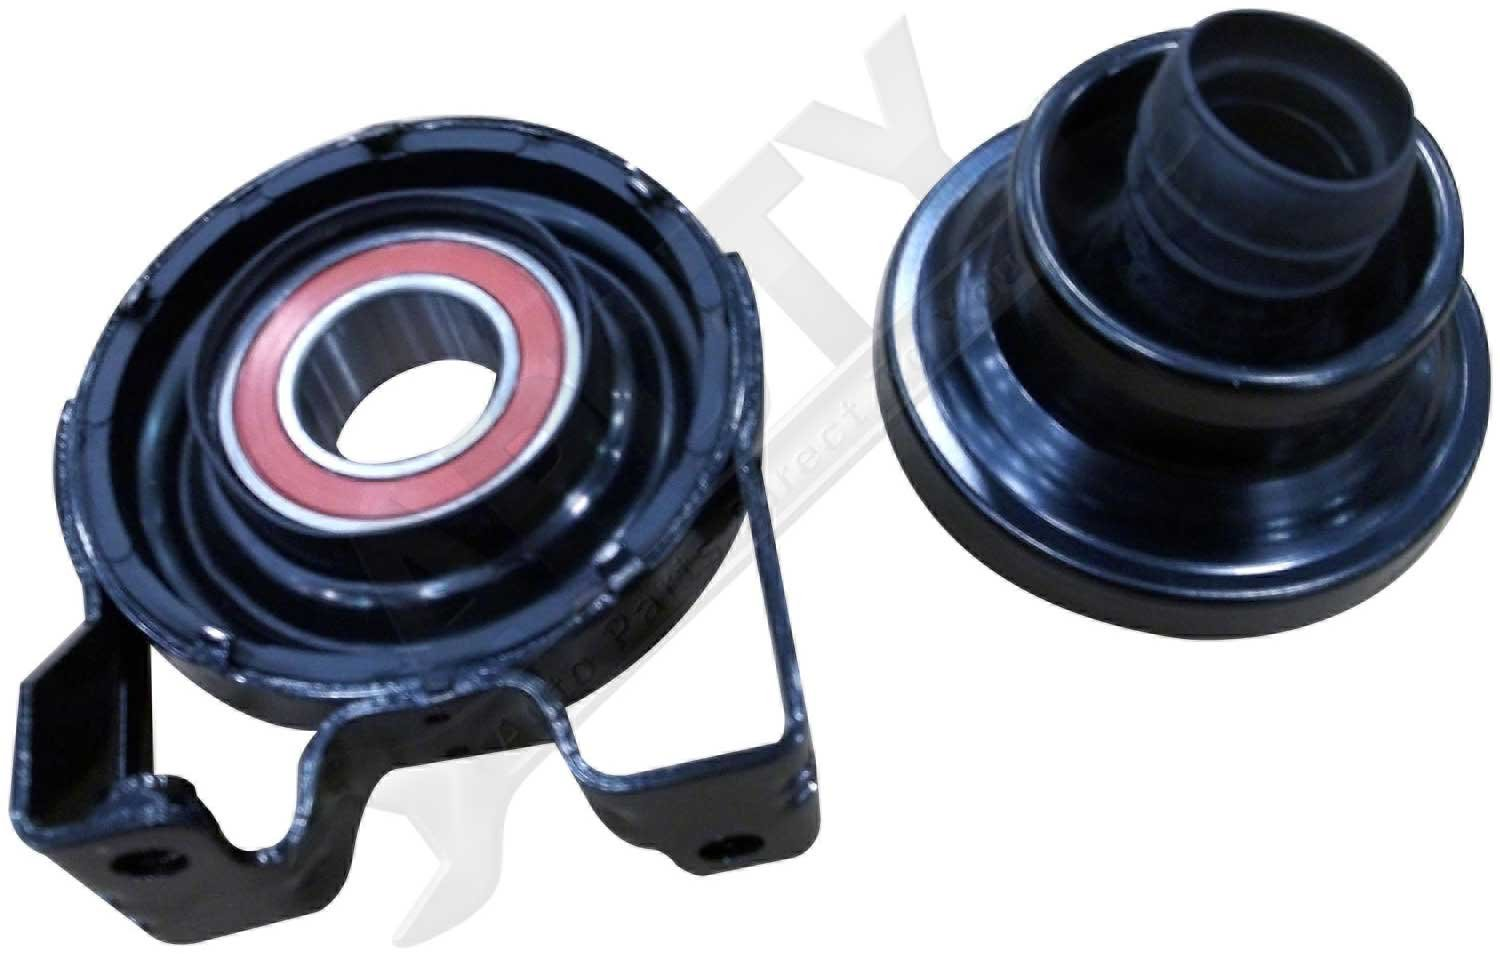 APDTY 045814 Driveshaft Center Support Bearing Kit Includes Support Bearing, Rubber Boot, and Clamps Fits 2003-2010 Porsche Cayenne 2004-2007 Volkswagen Touareg (Replaces OE 95542102015, 955421020SUP)